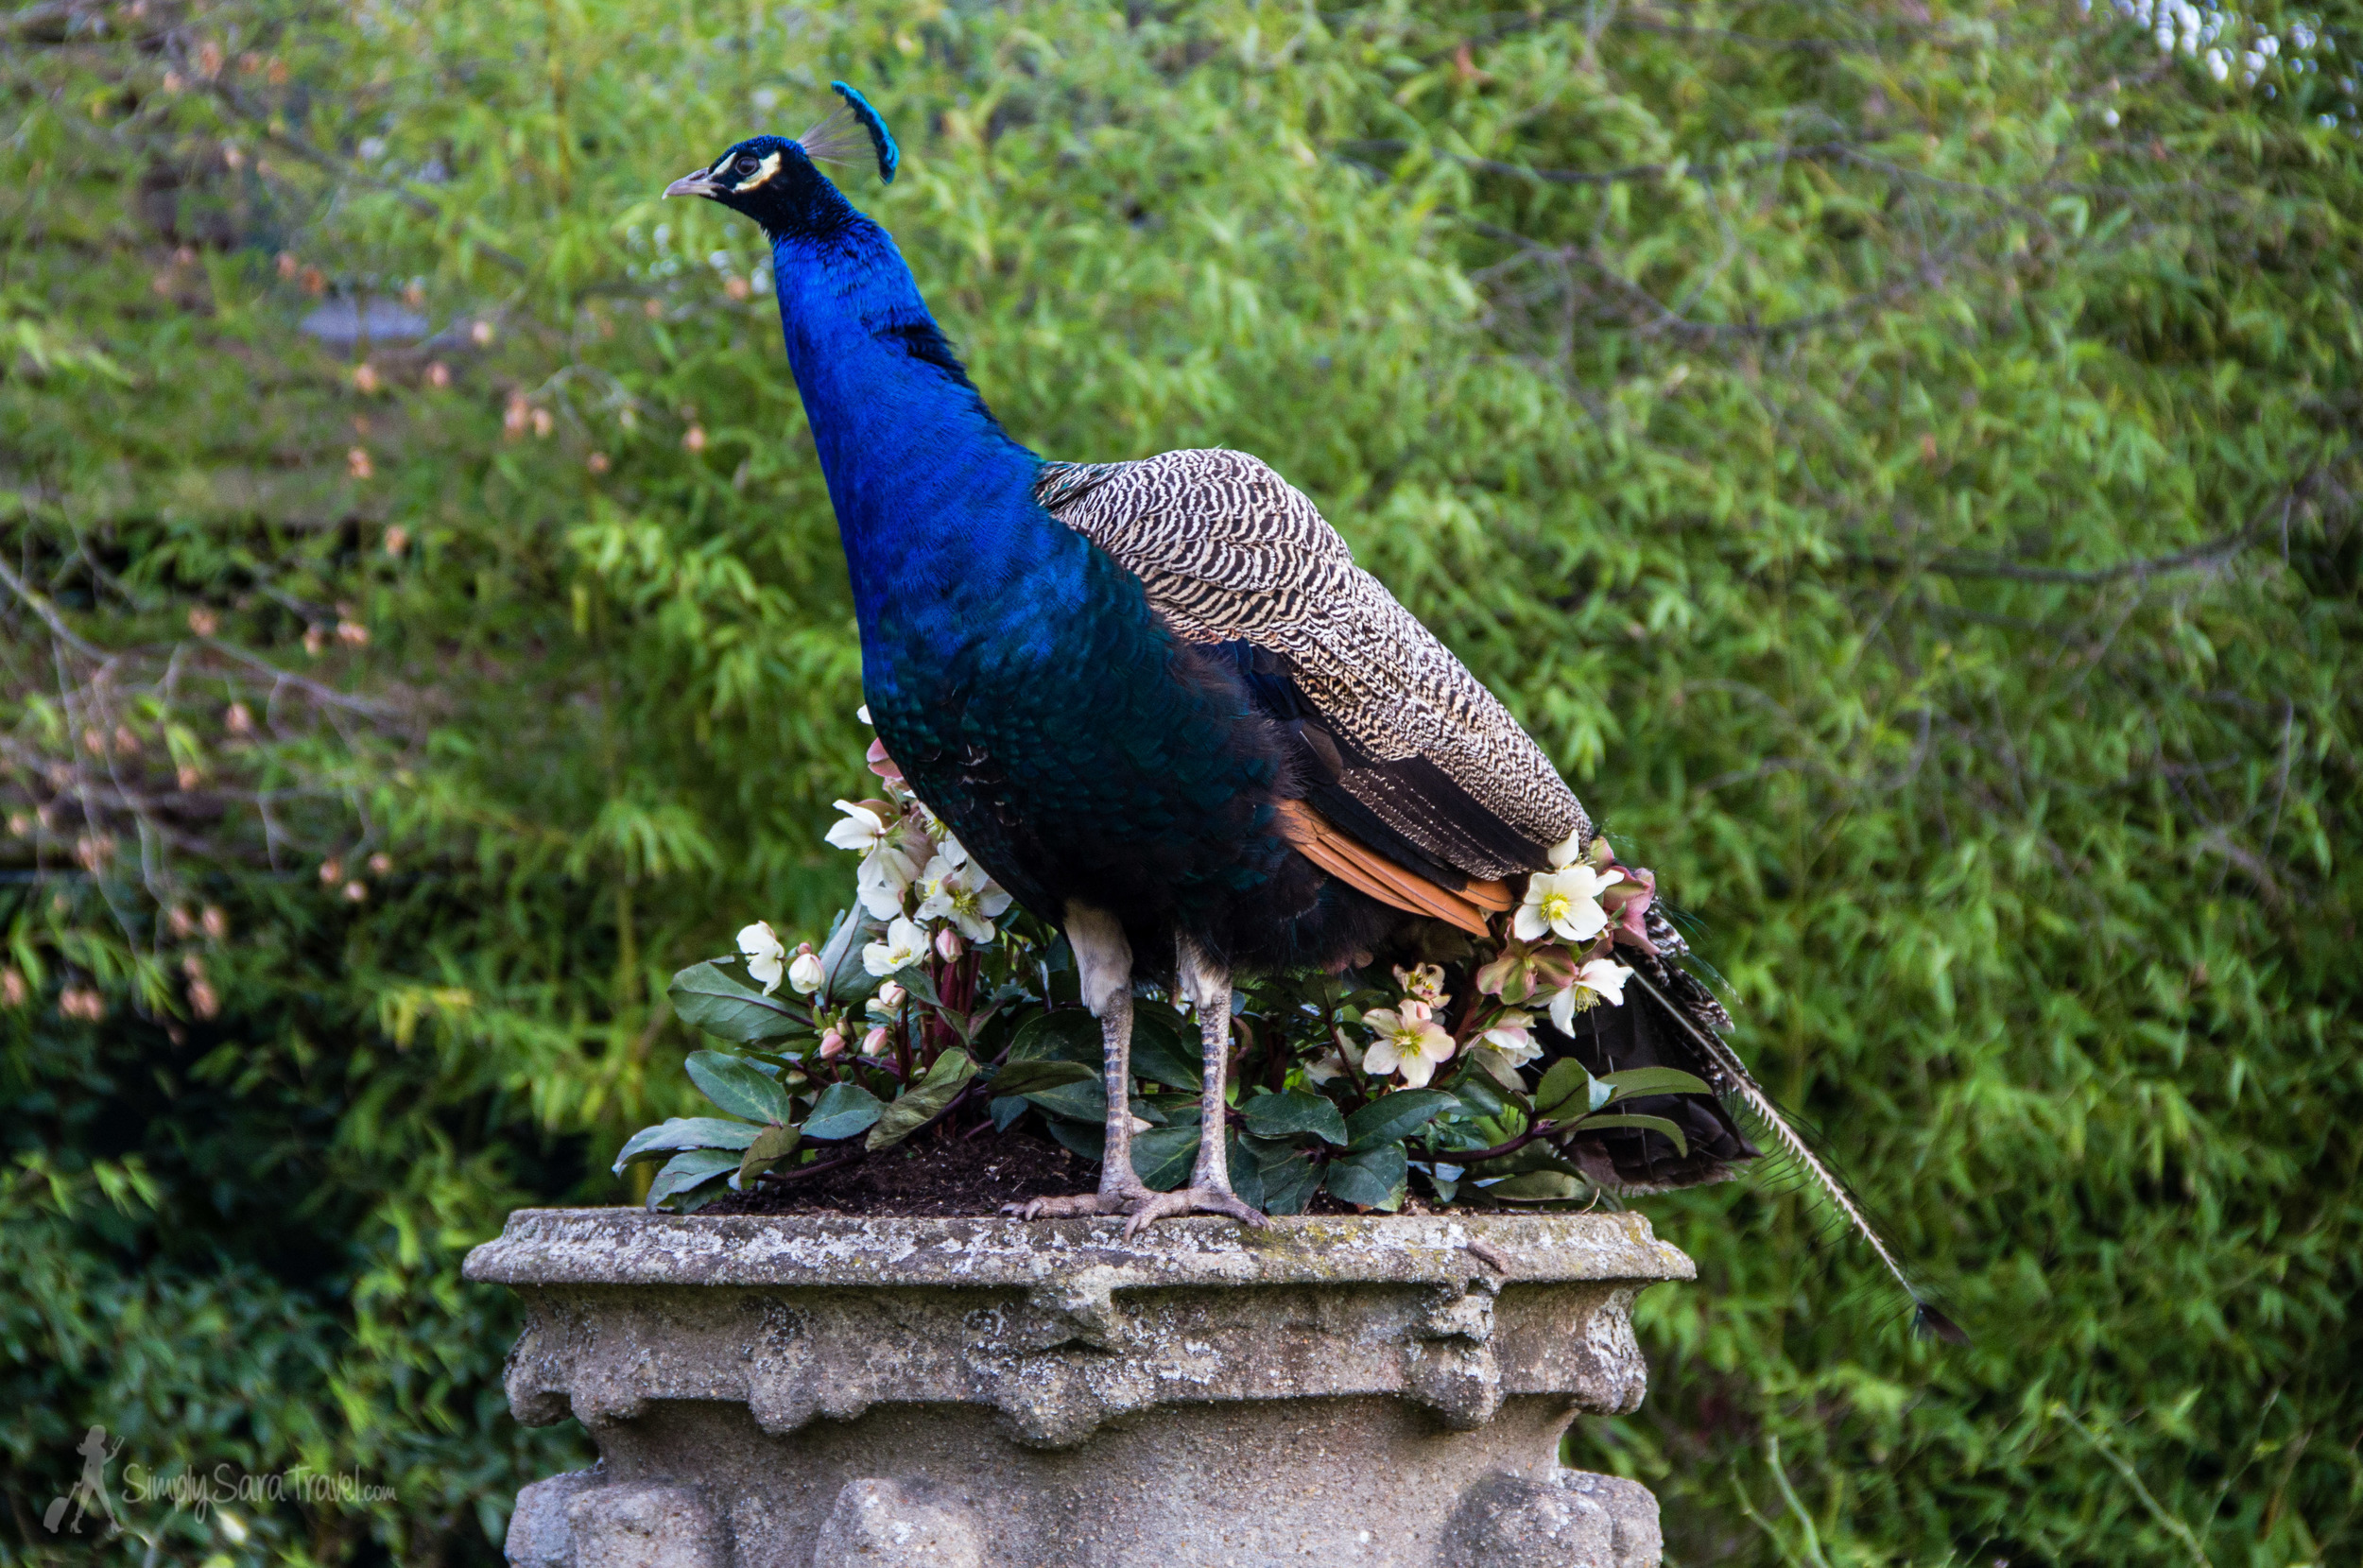 Many of the birds are in cages, but the peacocks wander the grounds freely.Don't forget to look up to spot these vibrantly-colored birds!